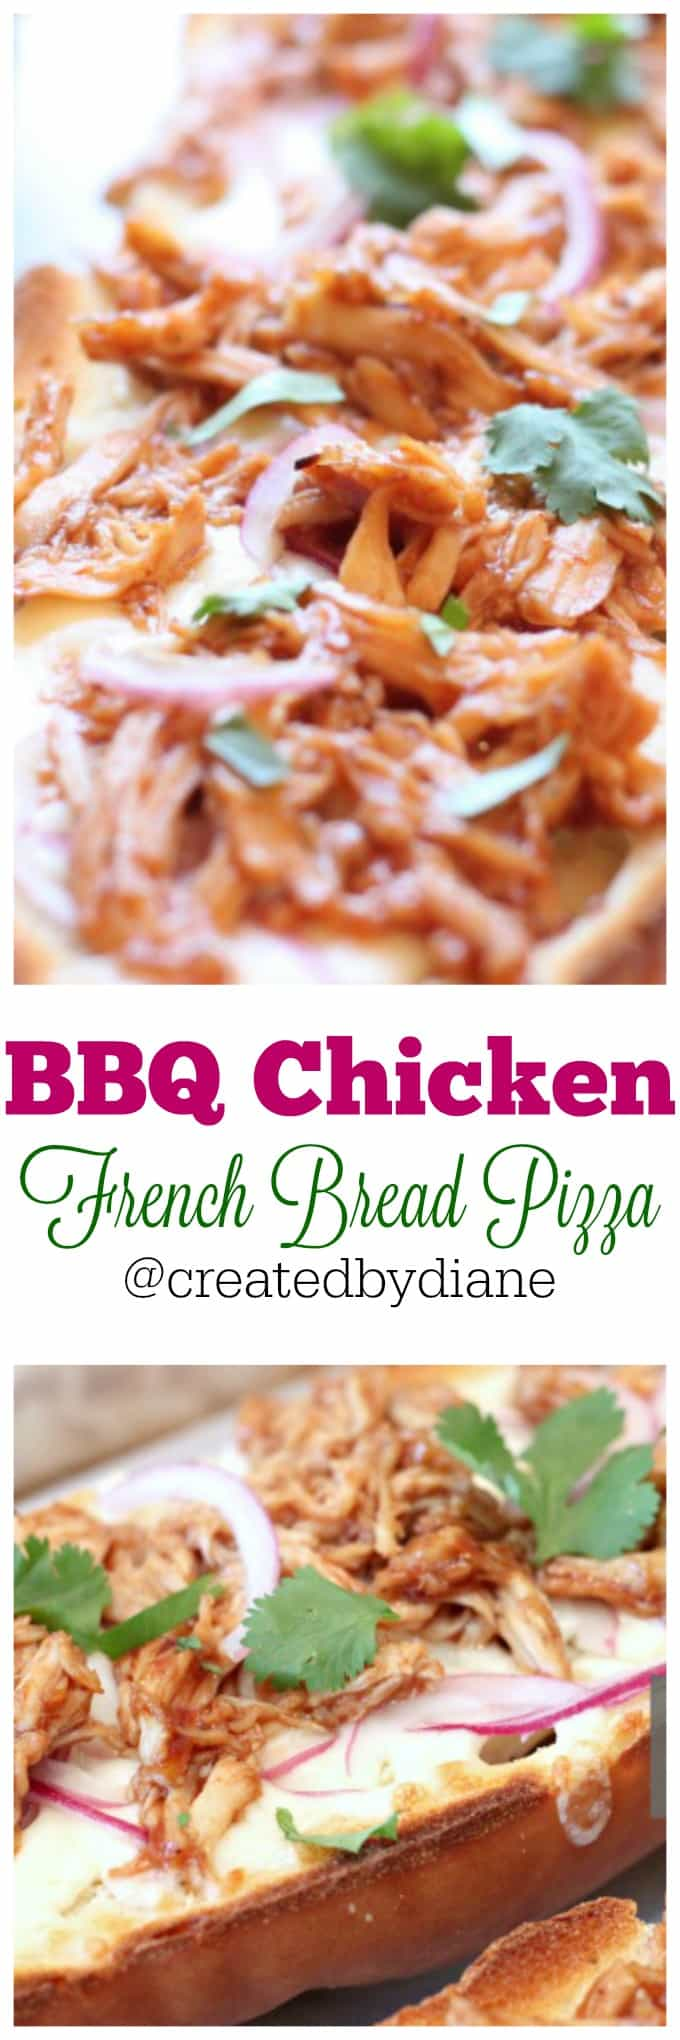 BBQ Chicken French Bread Pizza @createdbydiane